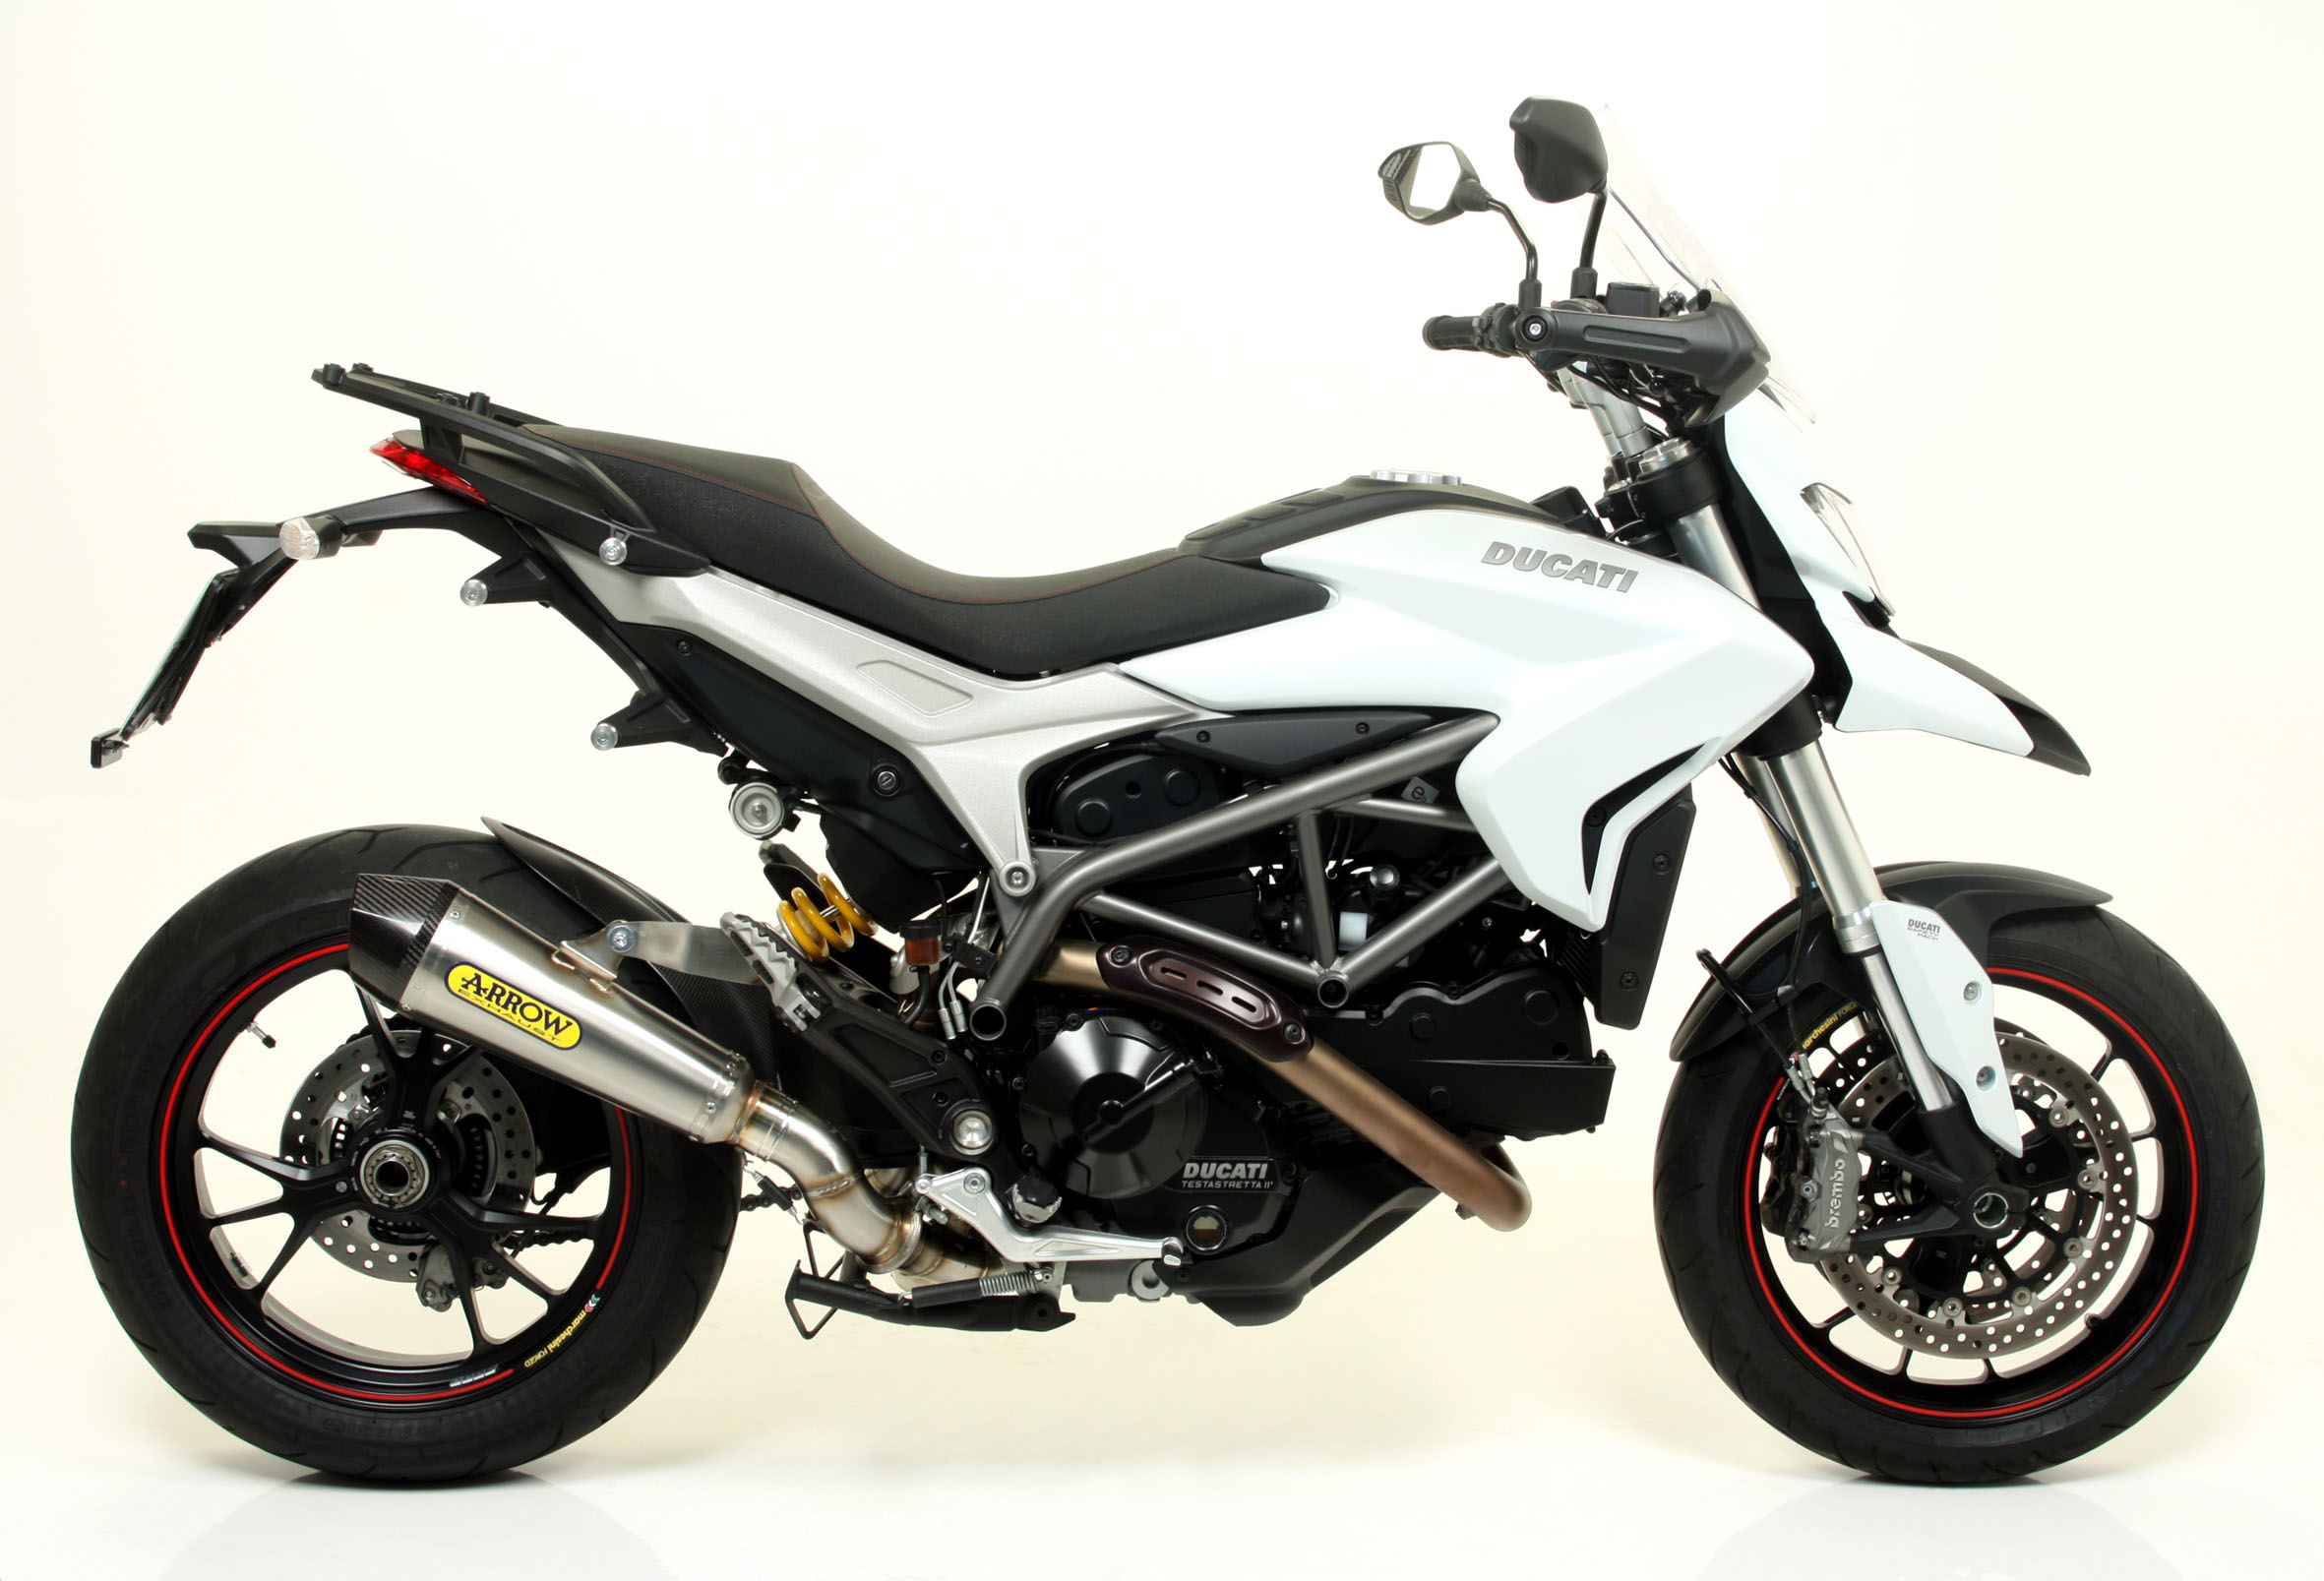 ducati hypermotard hyperstrada 821 slip on exhaust by arrow. Black Bedroom Furniture Sets. Home Design Ideas